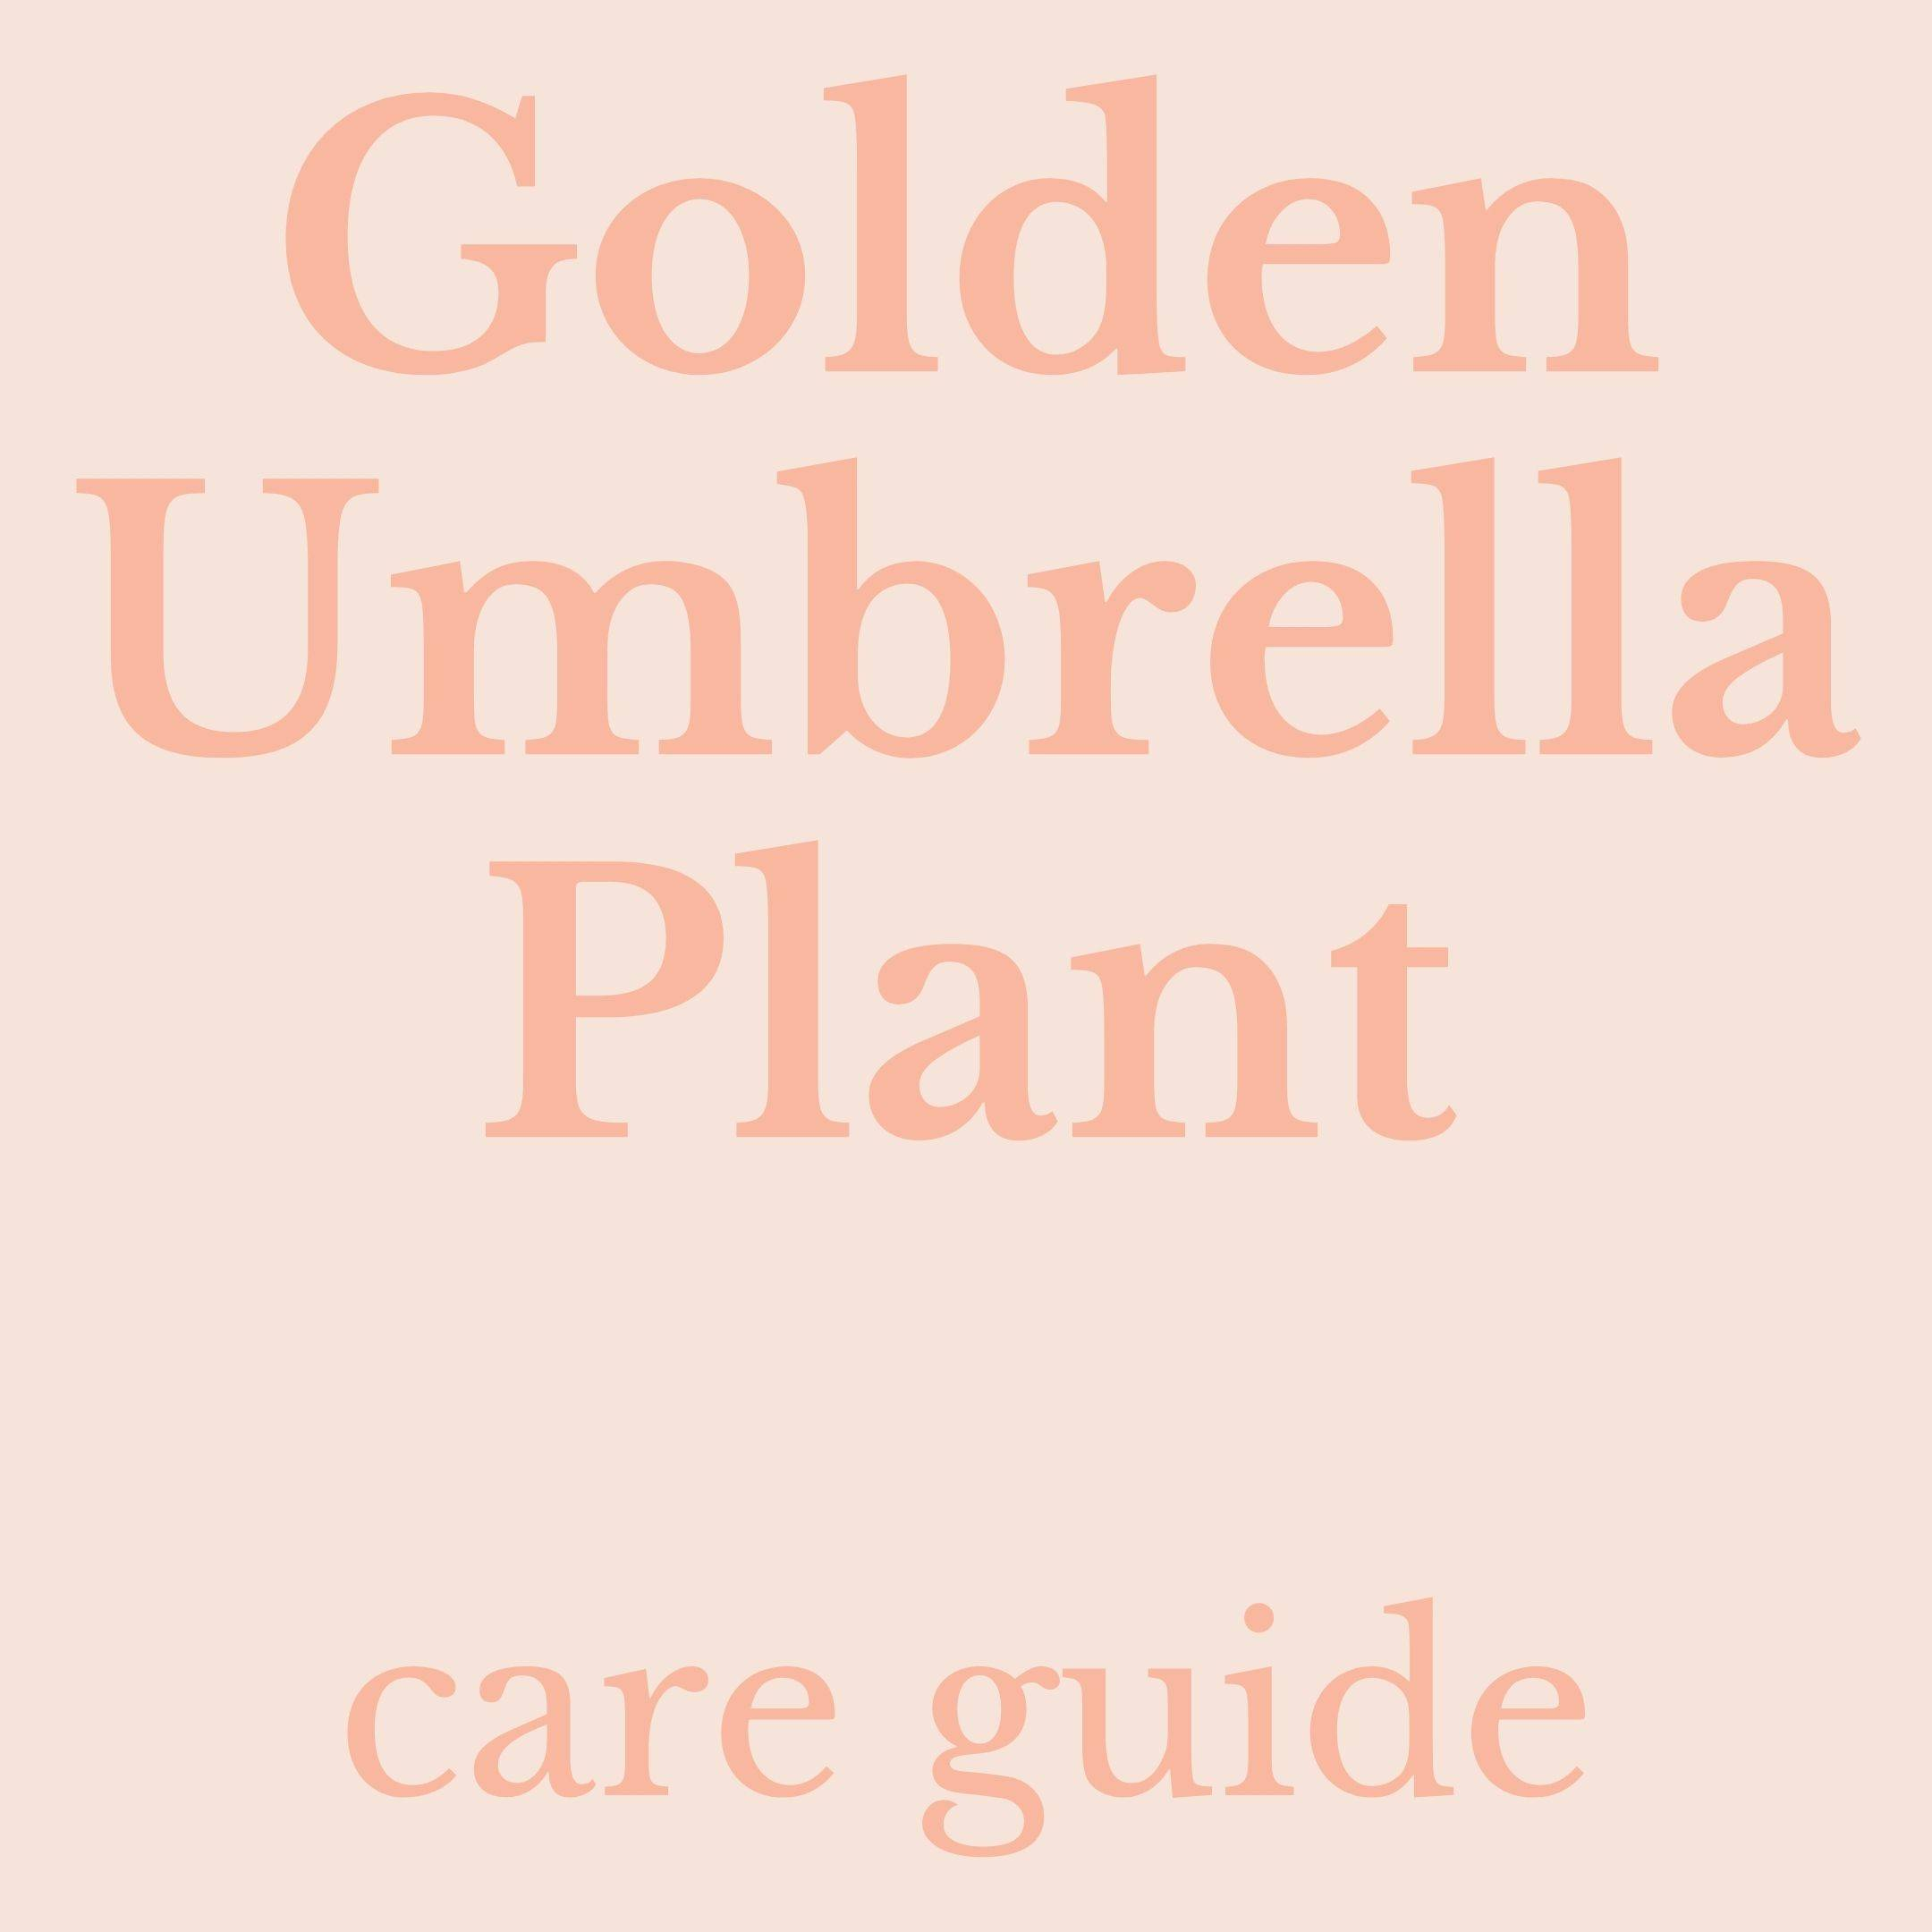 Drawing of golden umbrella plant